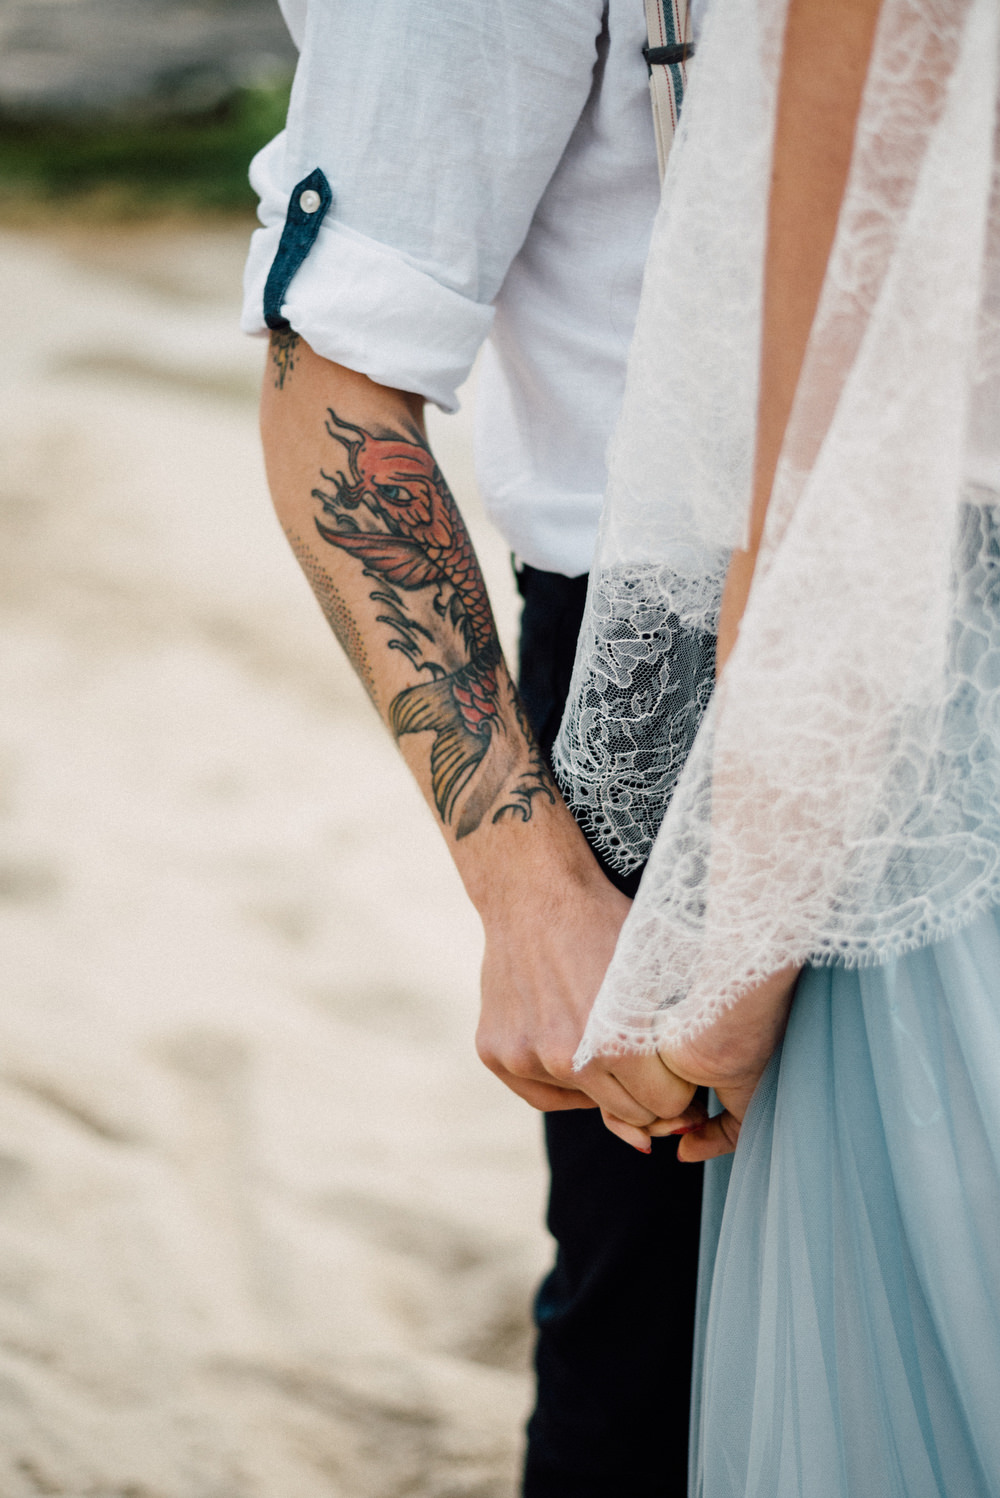 Outdoor Wild Nature Destination Spain Europe Beach Styled Shoot Groom Braces Bride Blue Gown Lace Tattooed   Blue Ibiza Elopement Ideas and Surprise Proposal Serena Genovese Photography